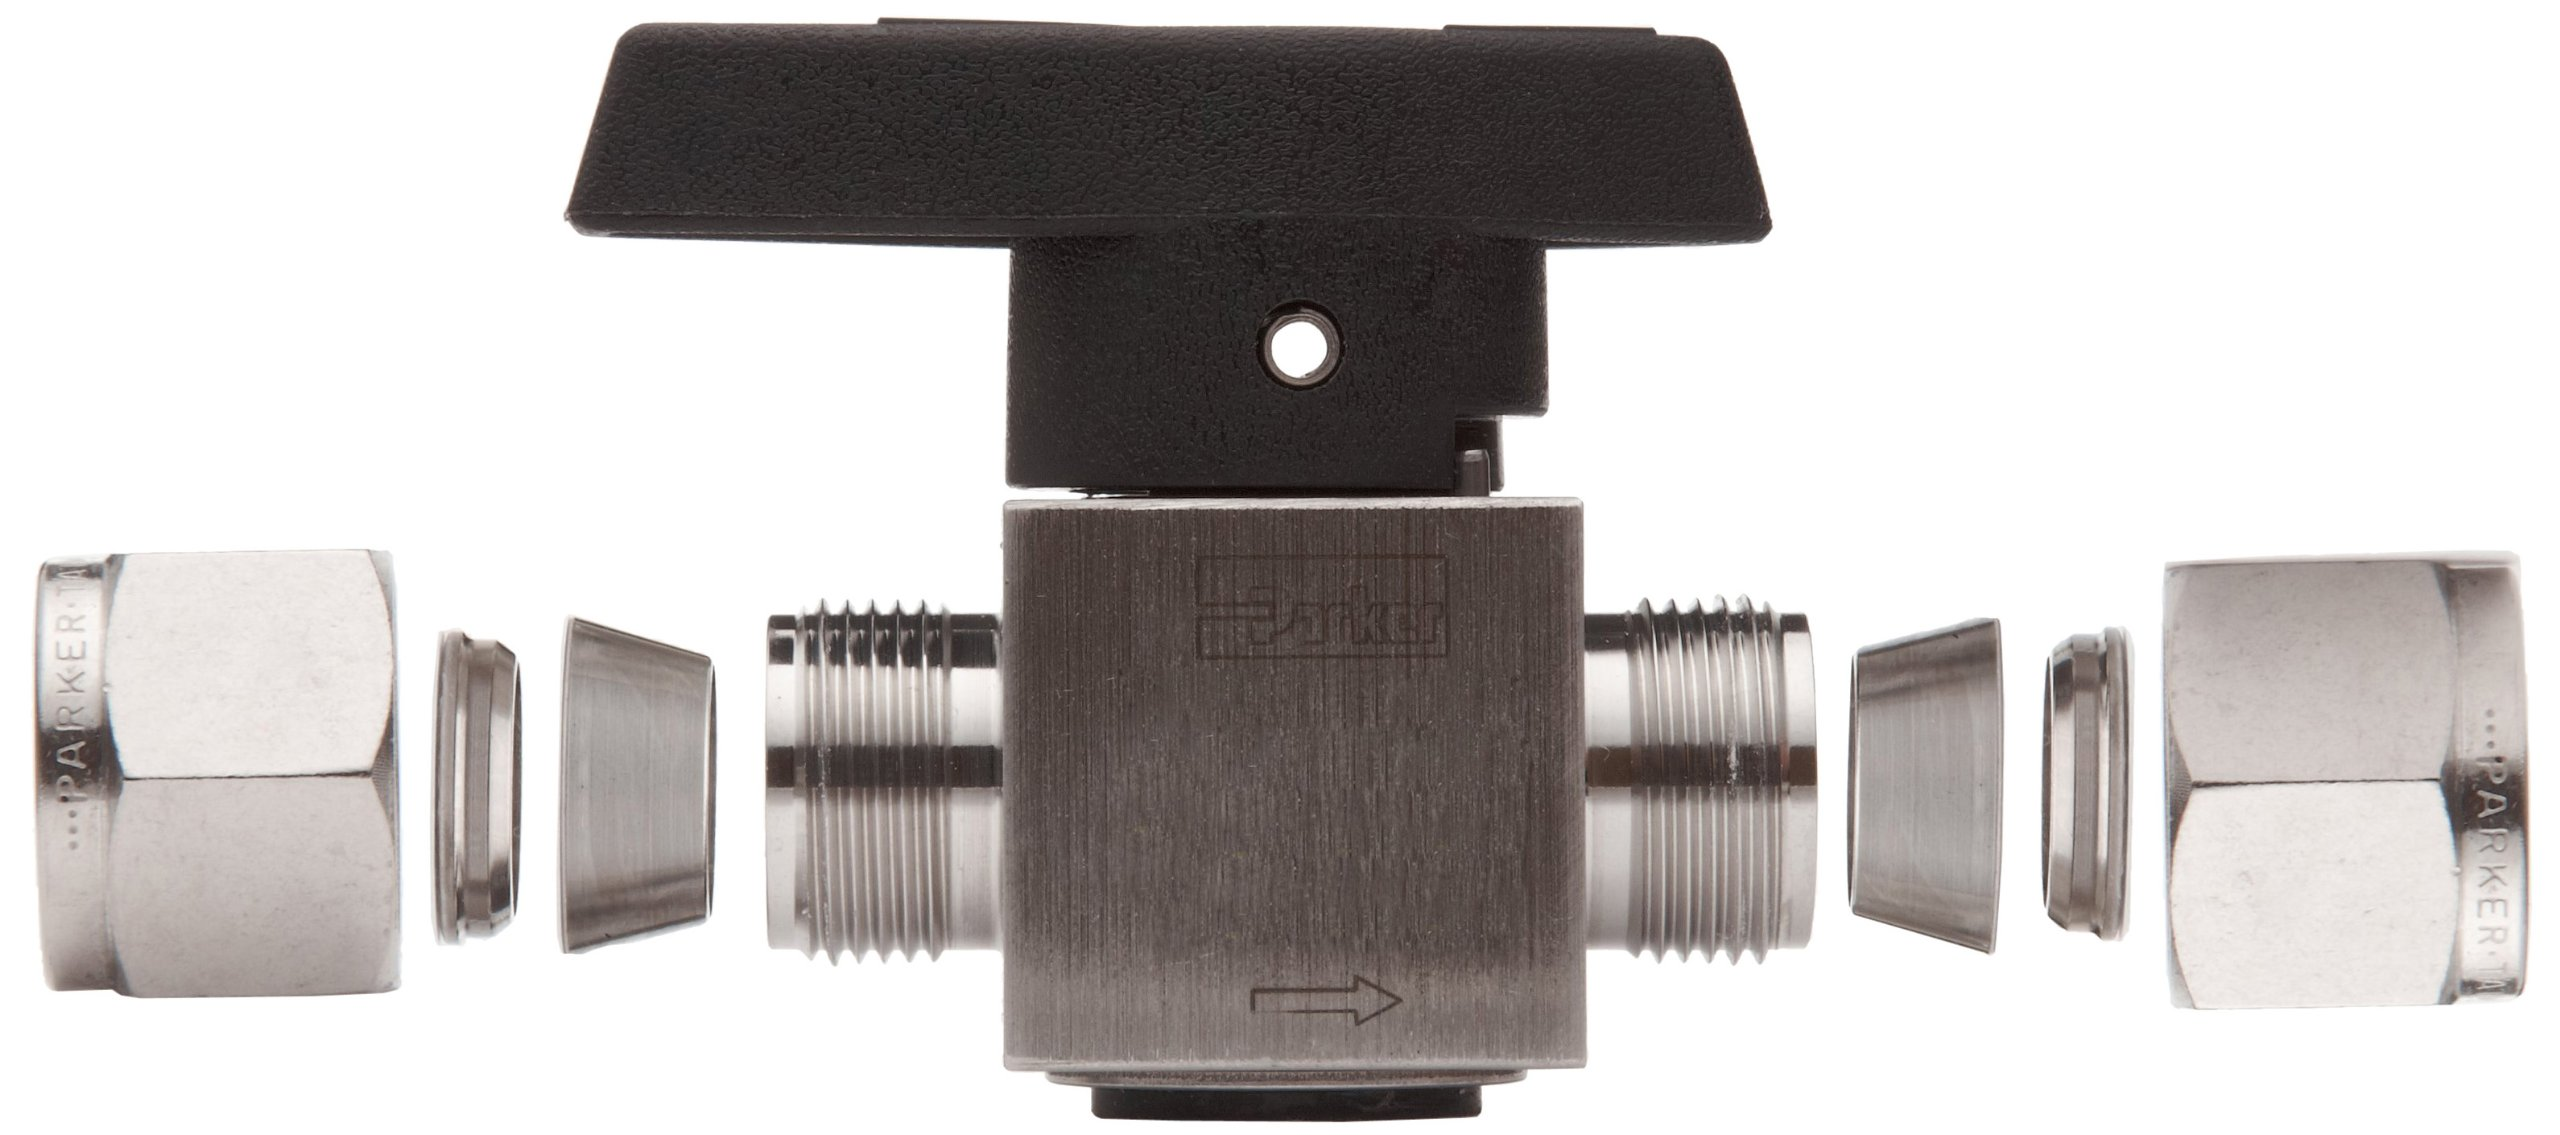 Parker 316 Stainless Steel Rotary Process Plug Valve with Fluorocarbon Rubber Seal and PTFE Back-Up Ring, 1/4'' A-LOK Compression Inlet/Outlet Port, 3000 psi by Parker (Image #4)